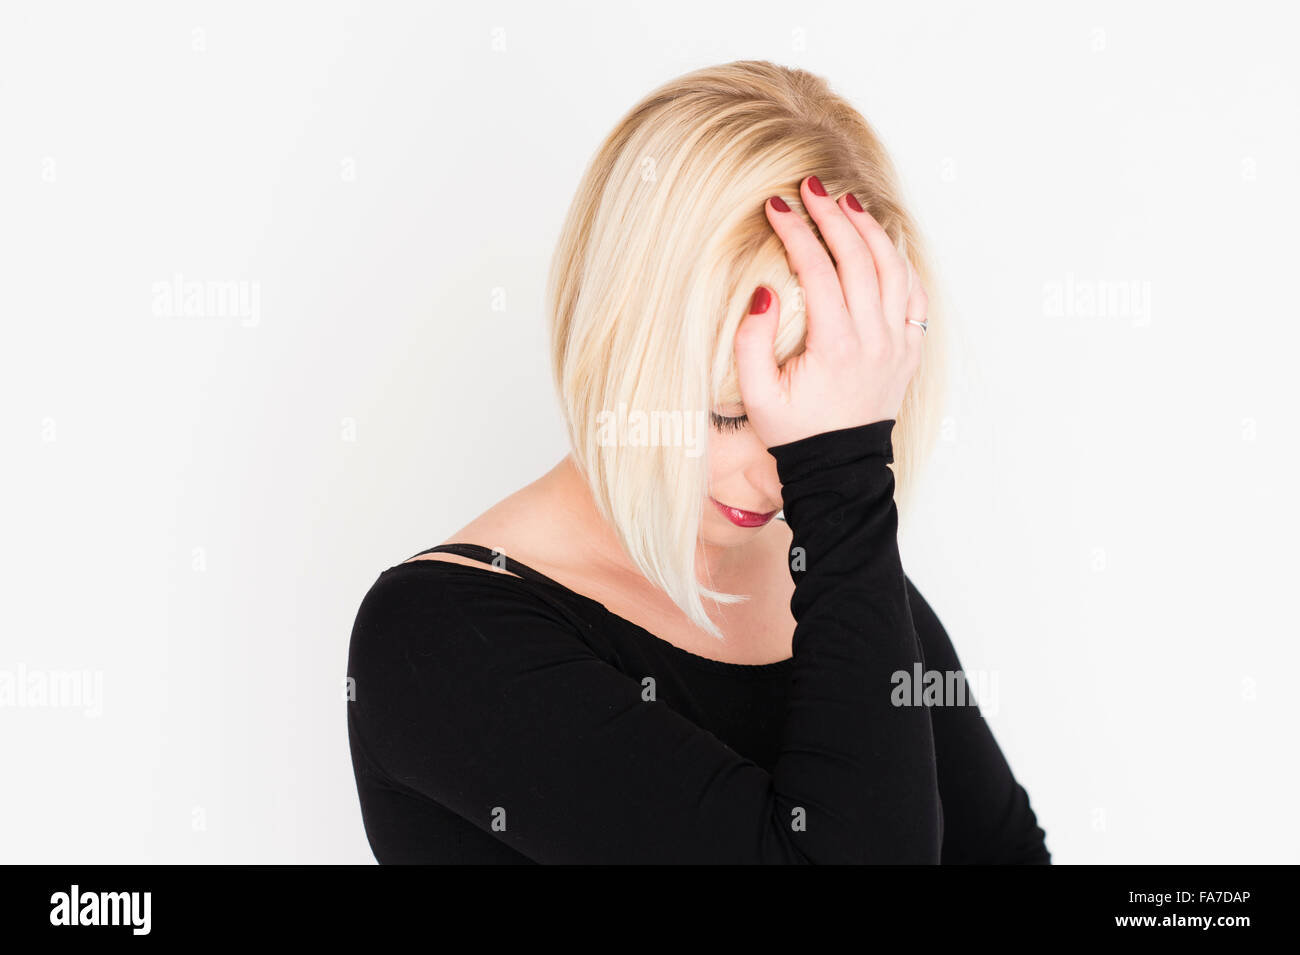 A young slim blonde blond haired woman girl, sad upset unhappy distraught grieving bereft depressed UK - Stock Image